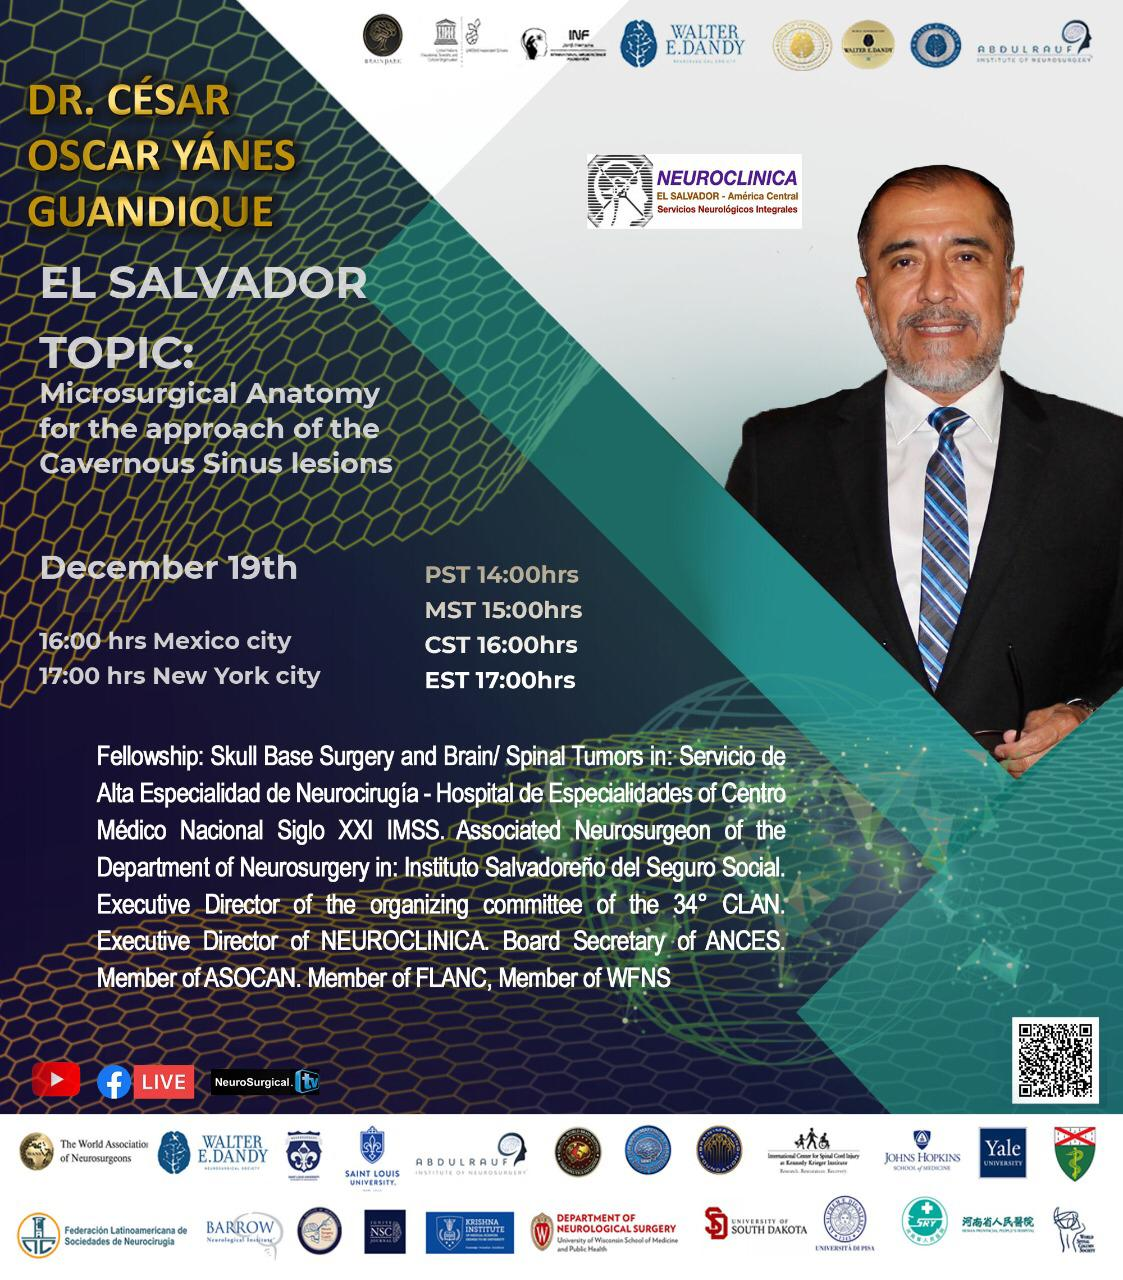 "in 30 Minutes, LIVE, Cesar Yanes Guandique MD de el Salvador presents NOW, at the UNESCO/Walter Dandy Neuroscience Conference ""Microsurgical anatomy for the approach of the Cavernous Sinus Lesions"""